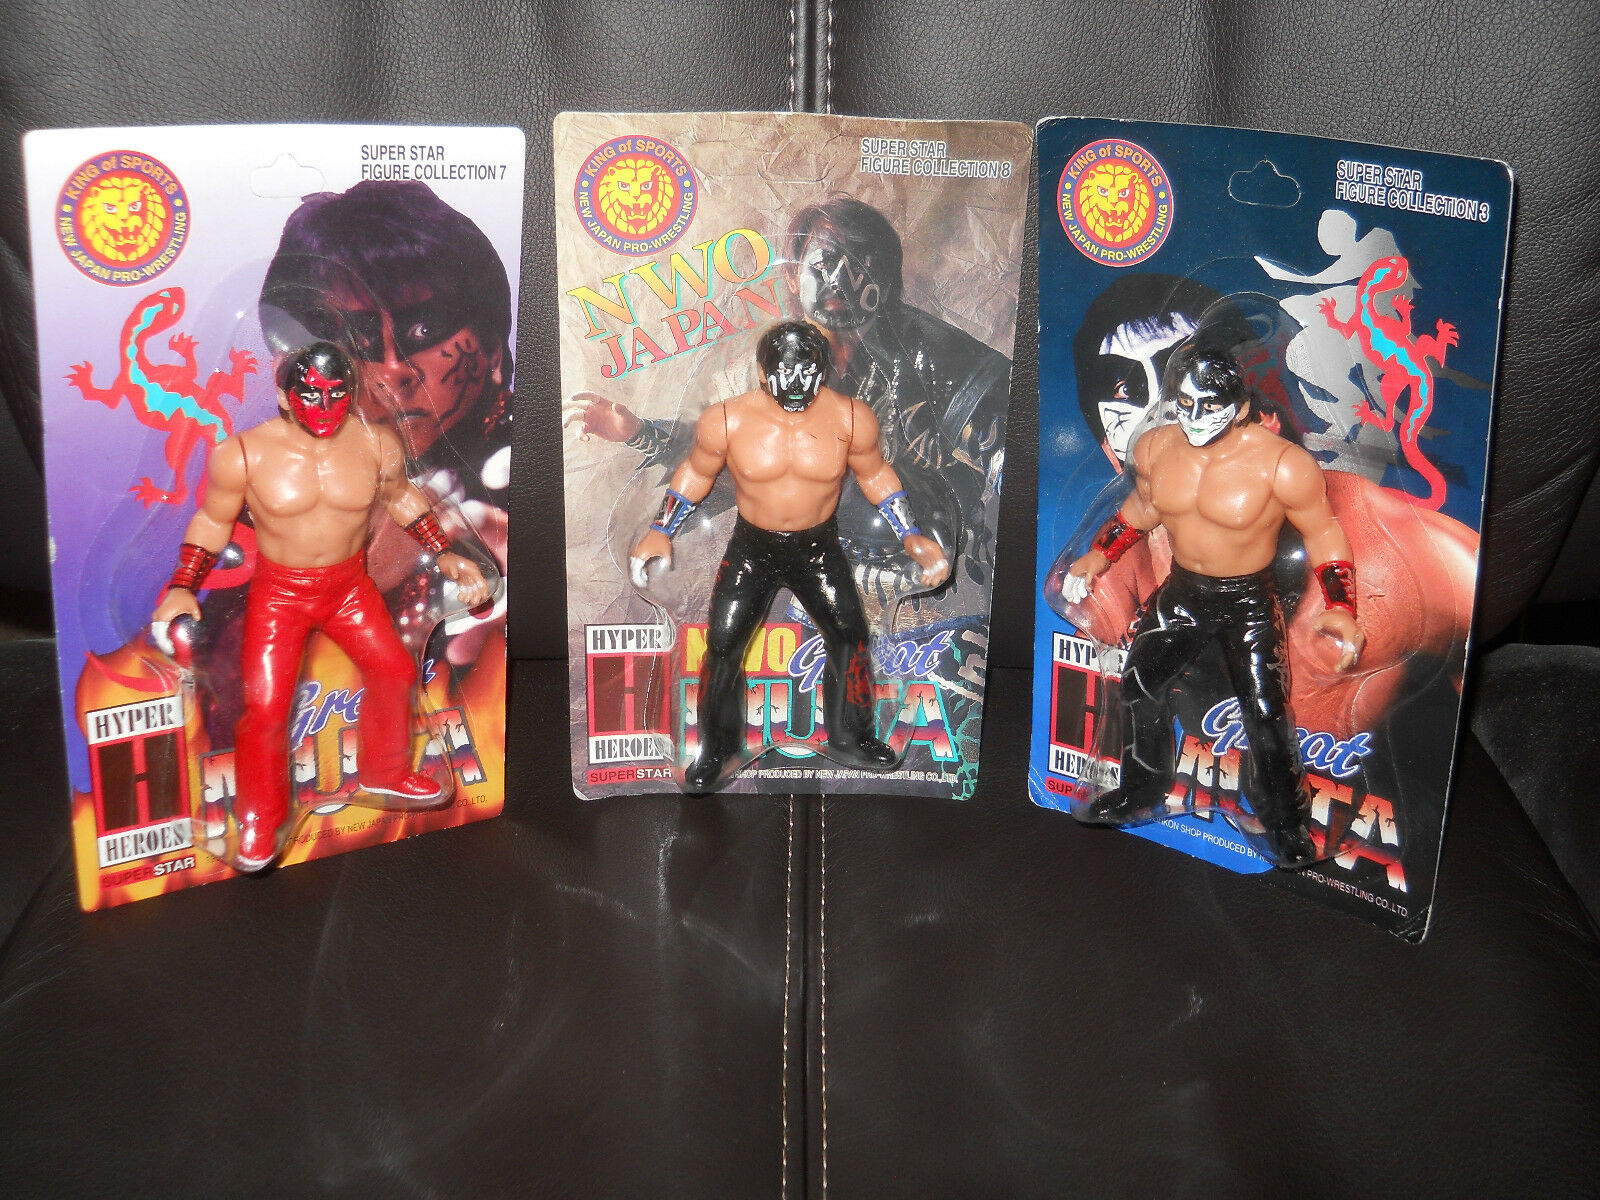 Hyper Heroes WWF WWE AWA WCW Nao NWO New Japan  Great Muta  figure MOC 3 TOTAL...